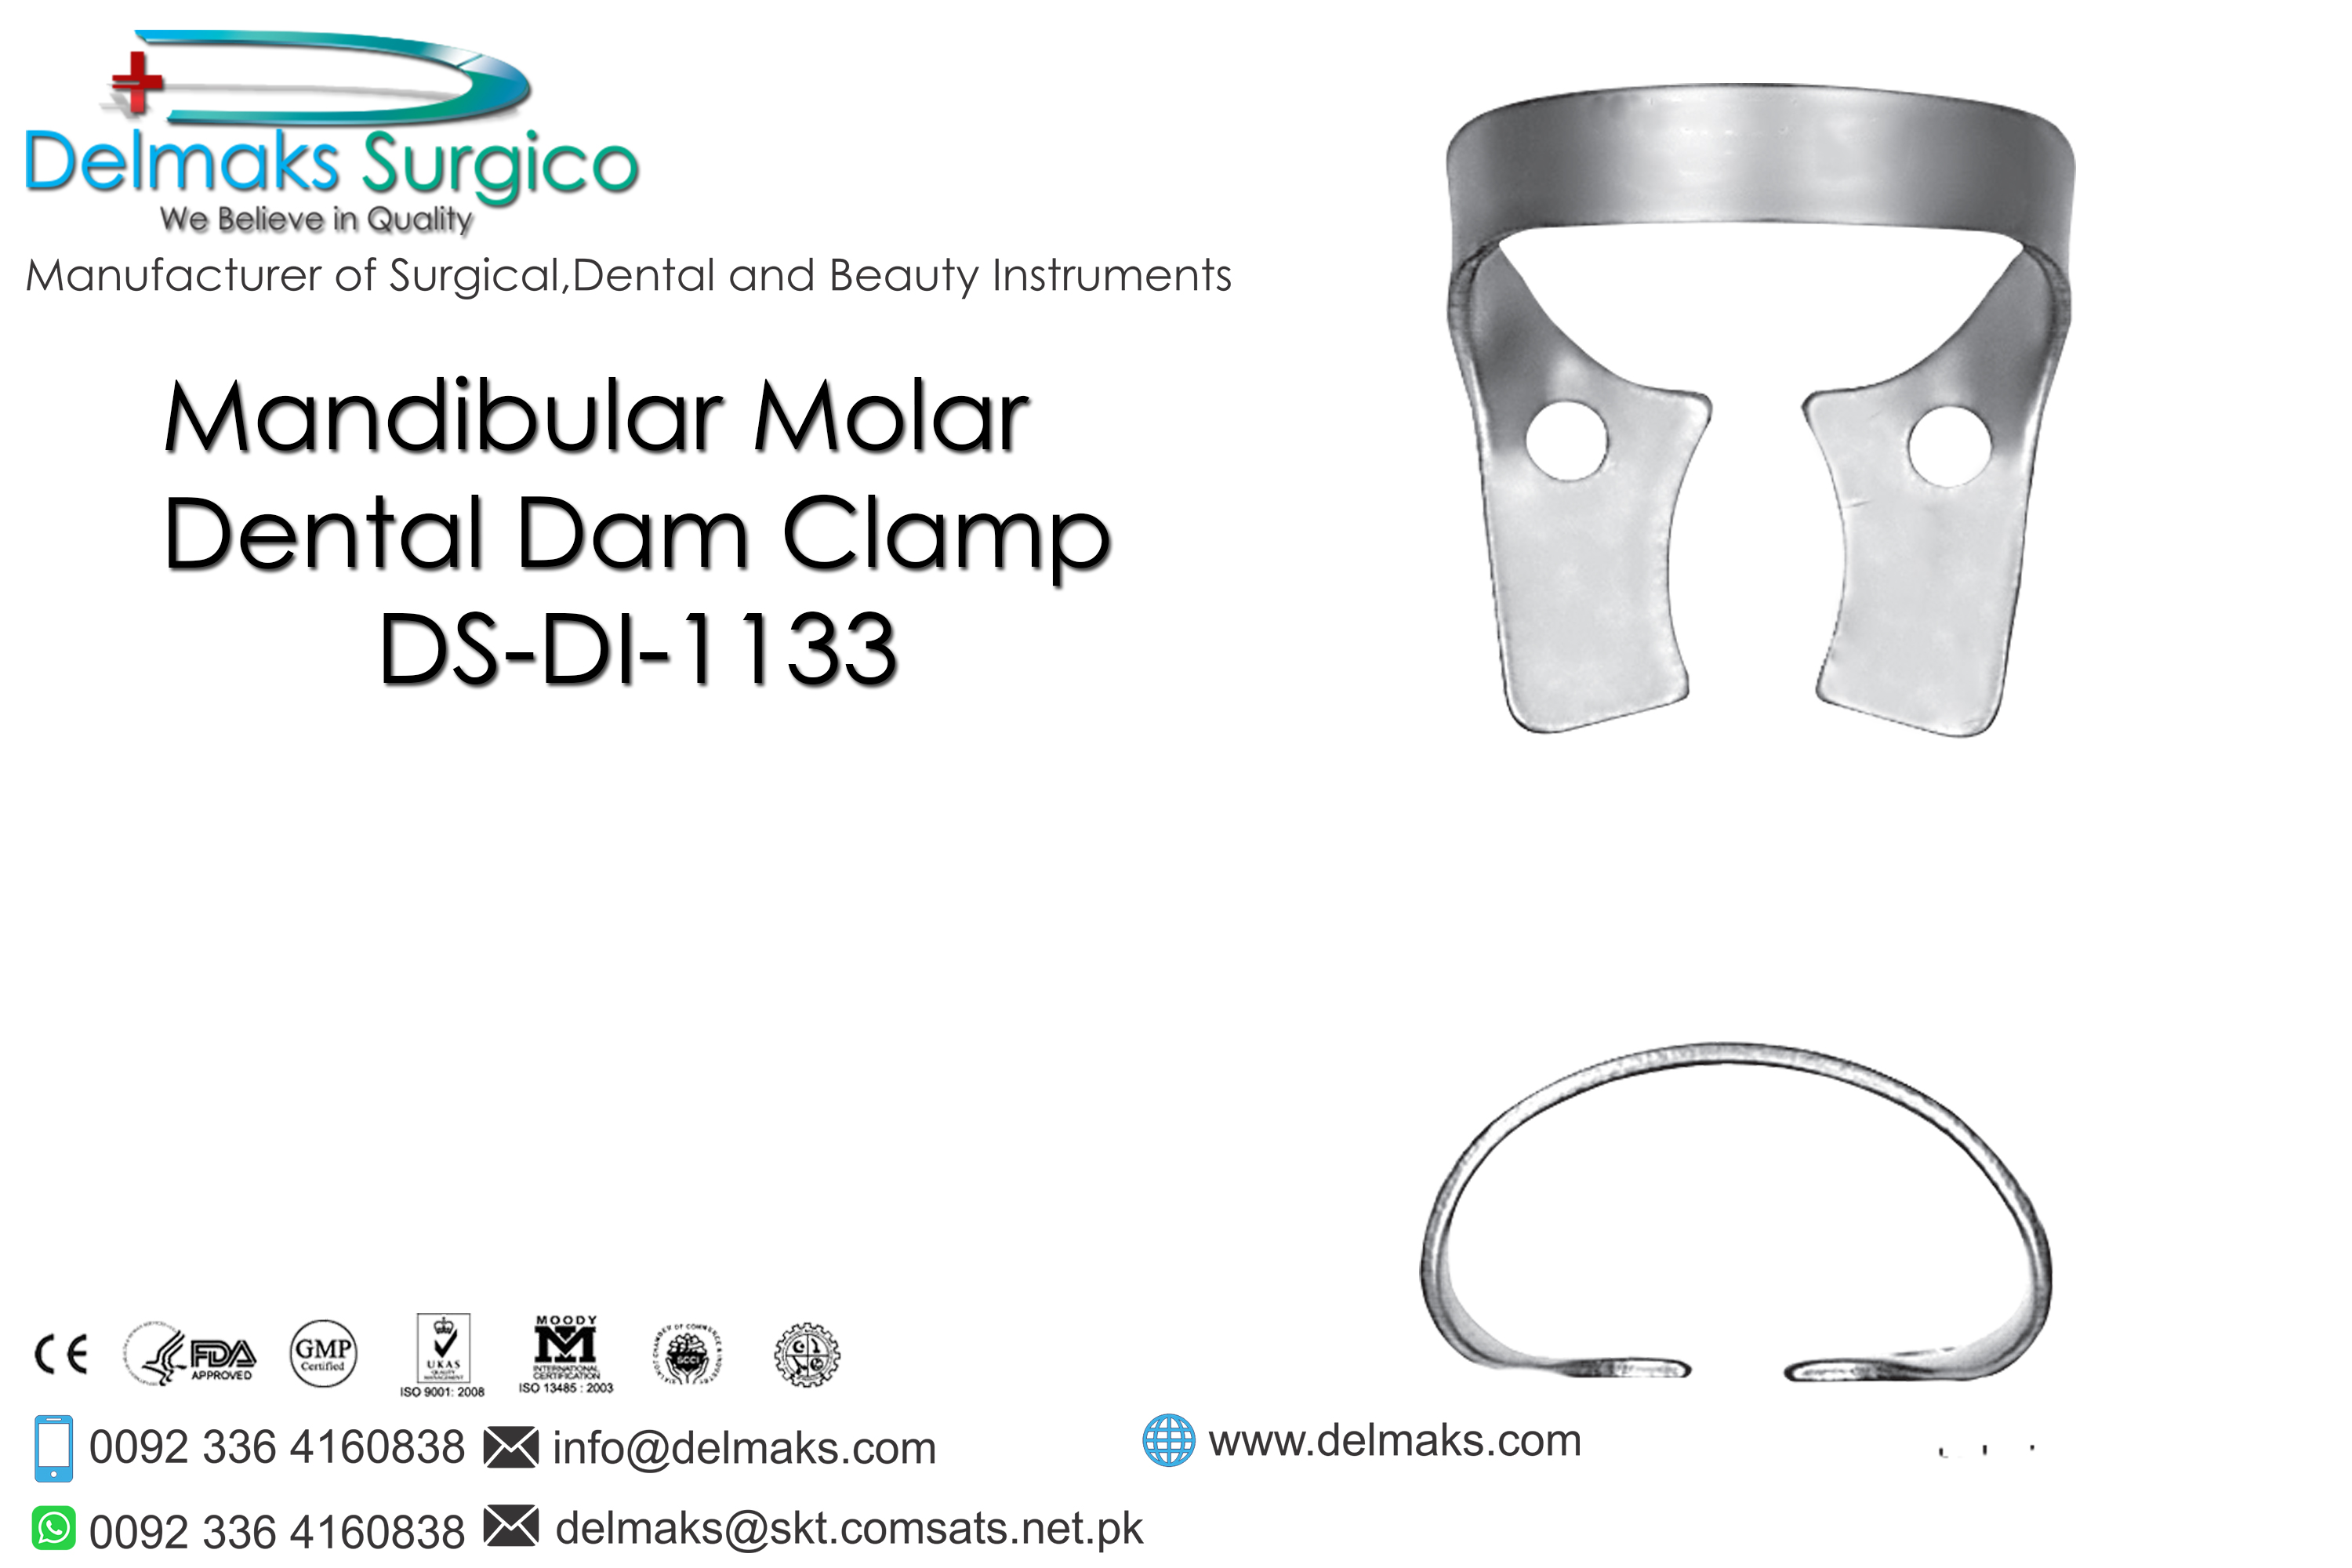 Mandibular Molar-Dental Dam Instruments-Dental Instruments-Delmaks Surgico